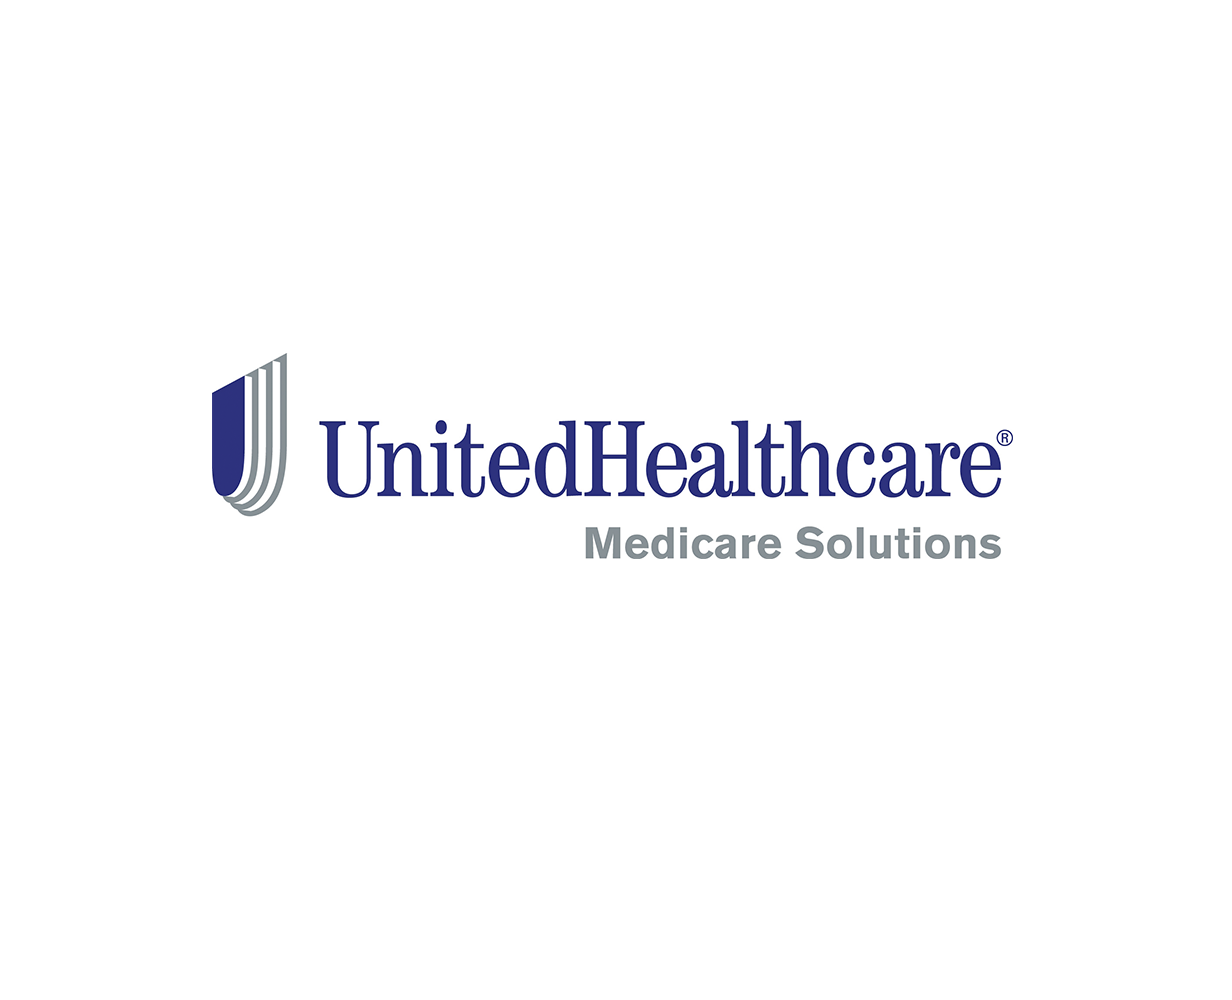 Products - United Healthcare Medicare Solutions